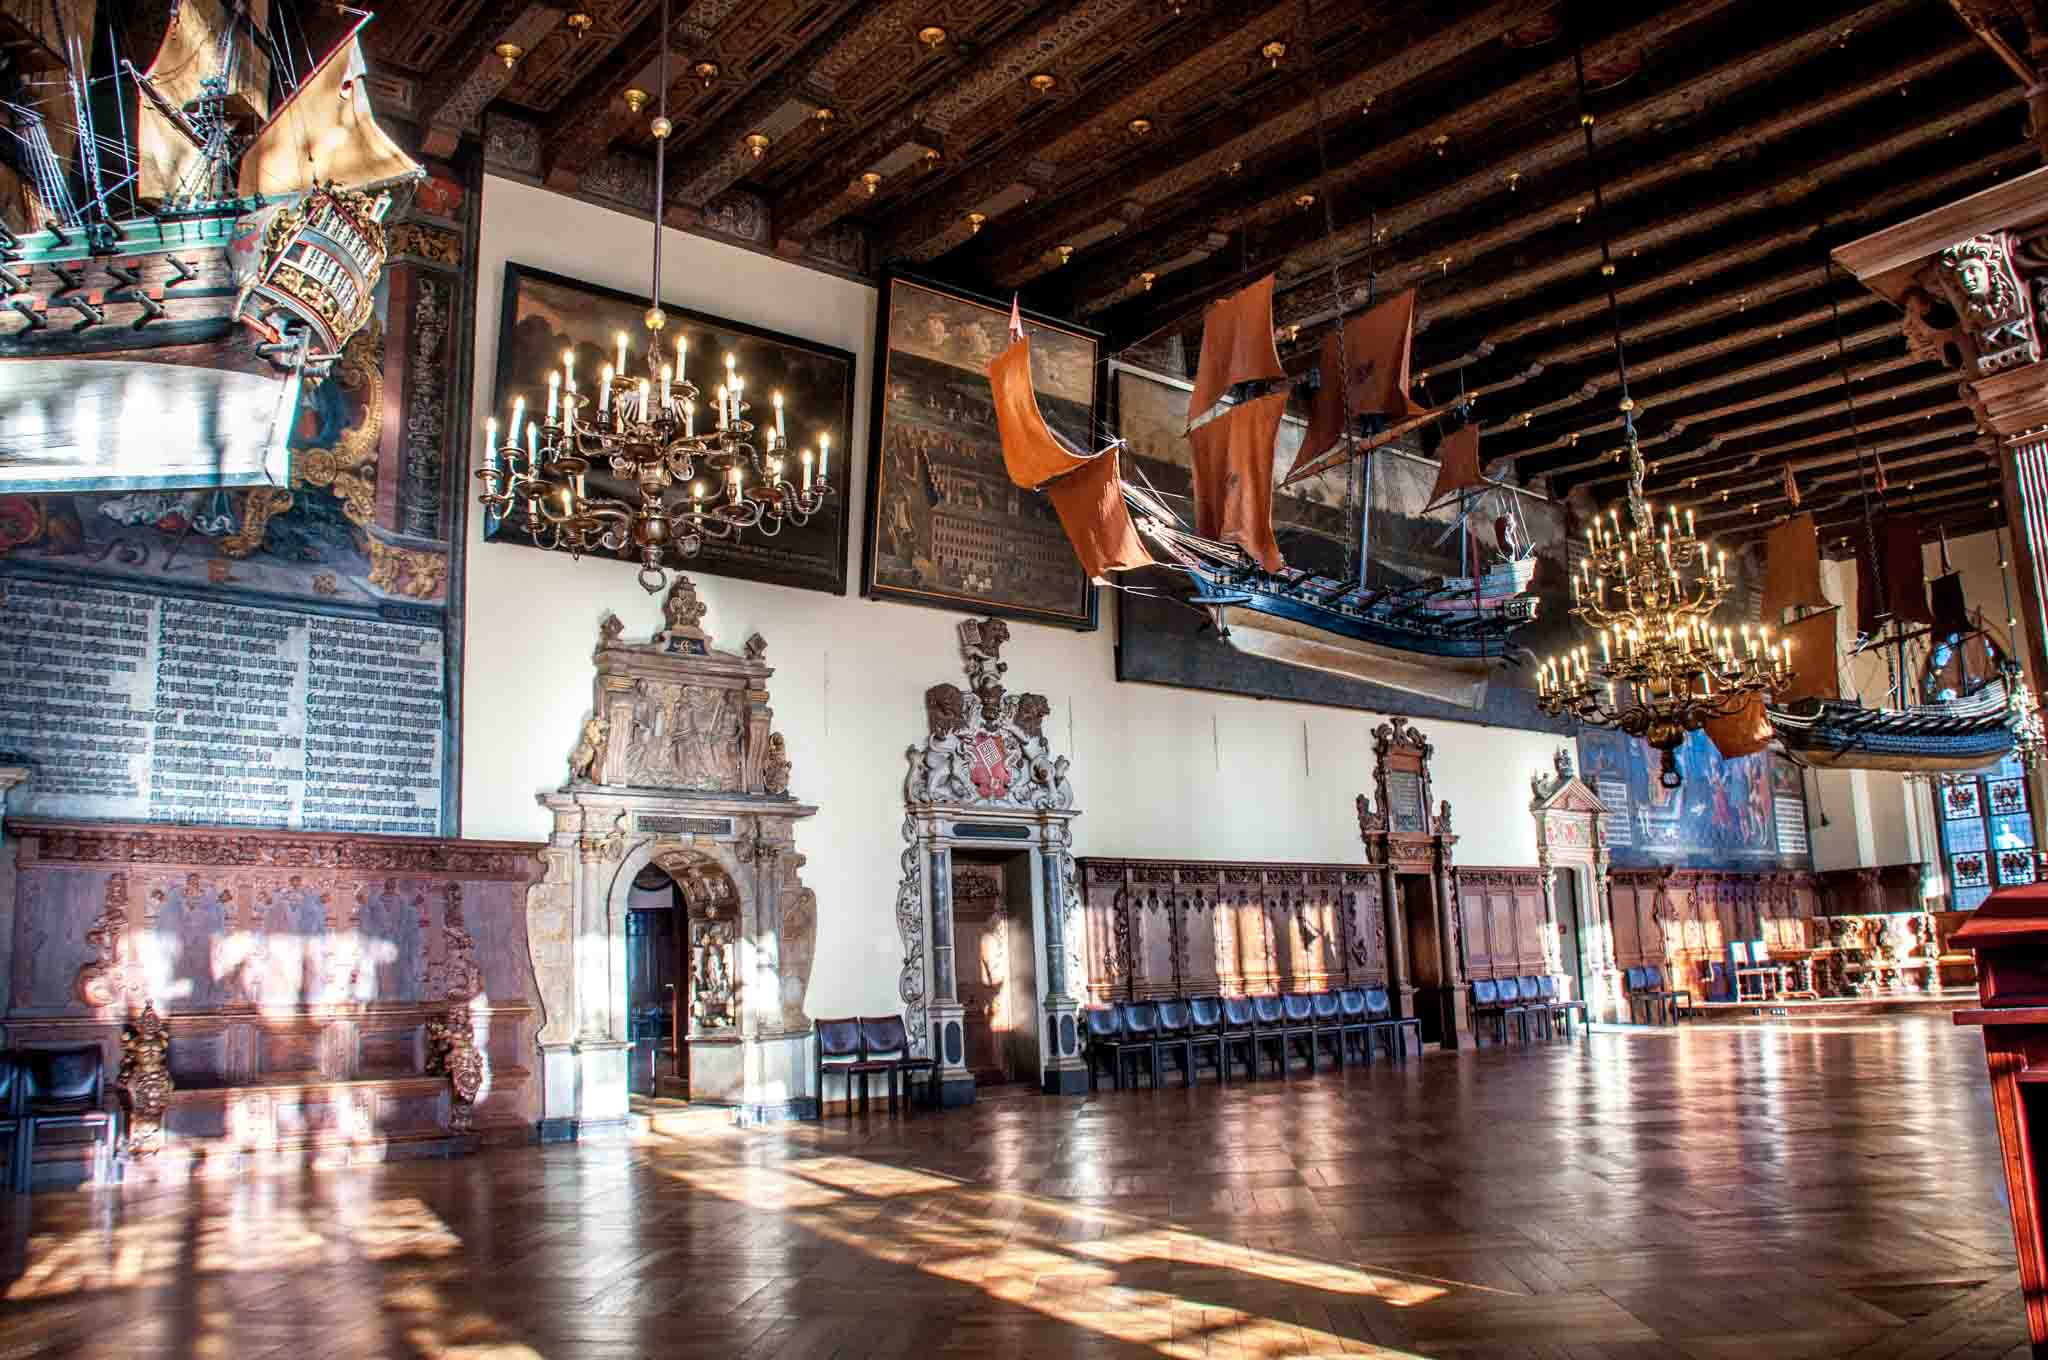 Upper Hall with paintings and replica ships hanging from the ceiling